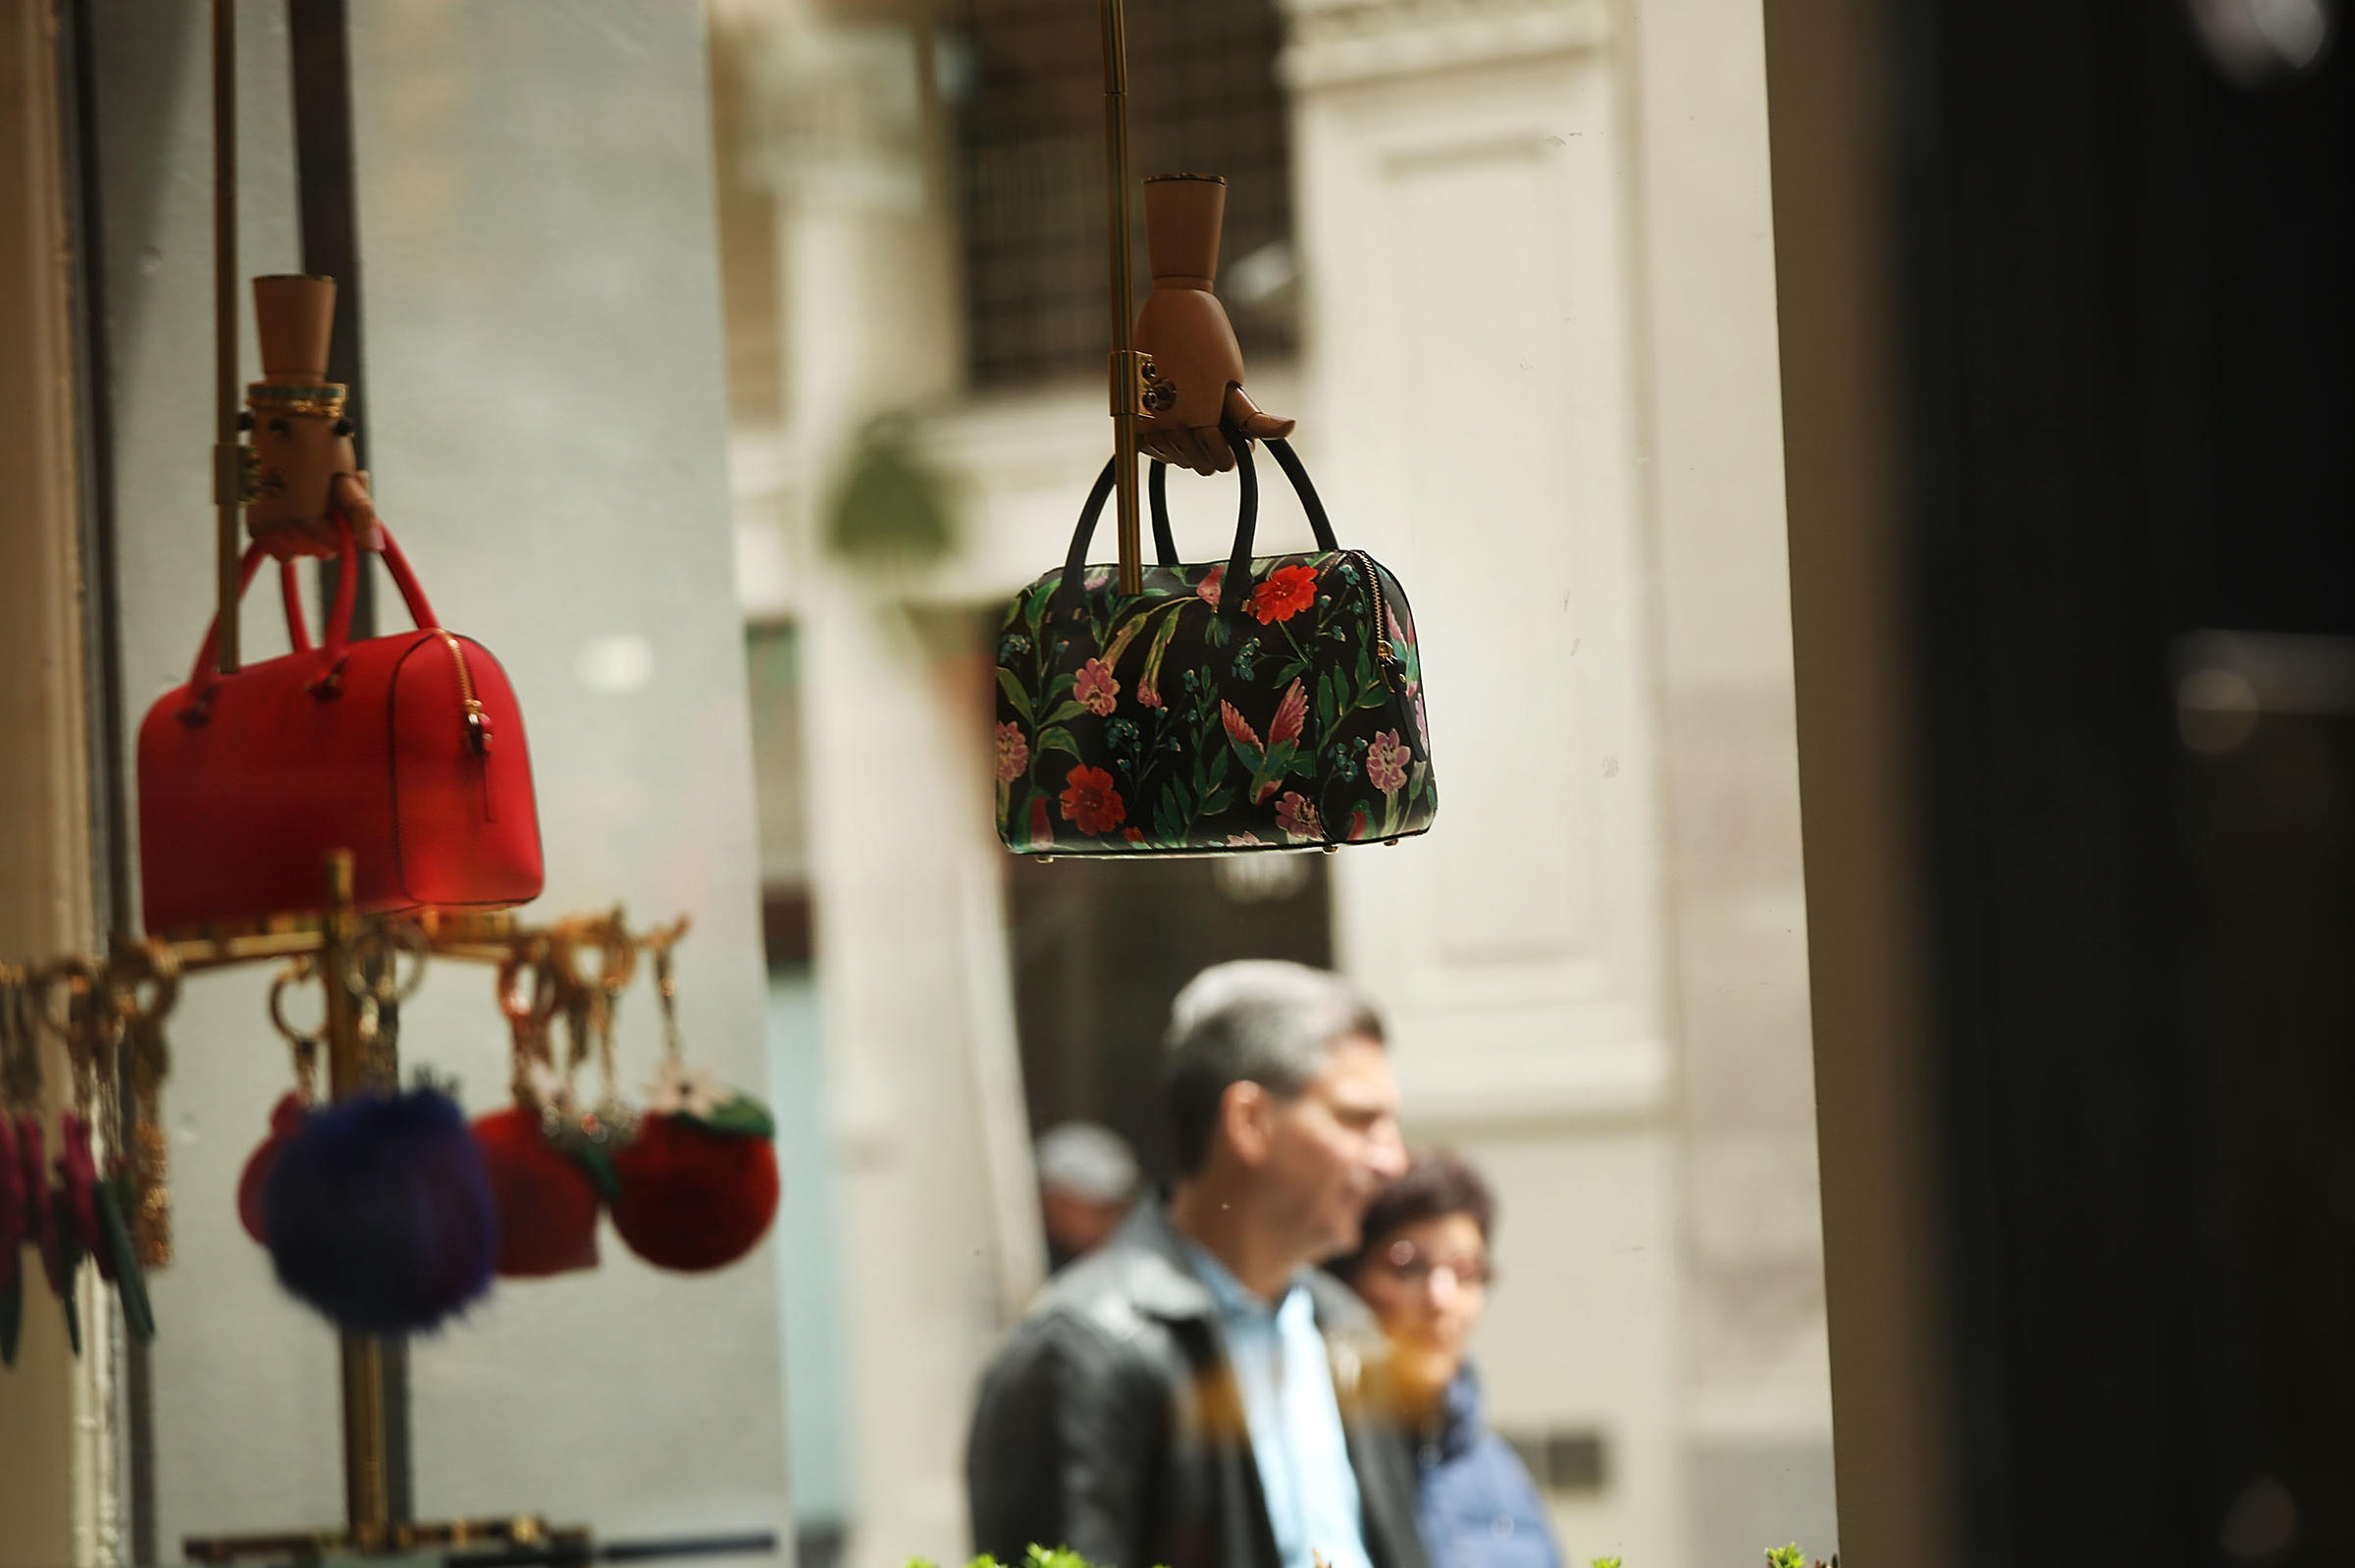 Coach confirms acquisition of Kate Spade